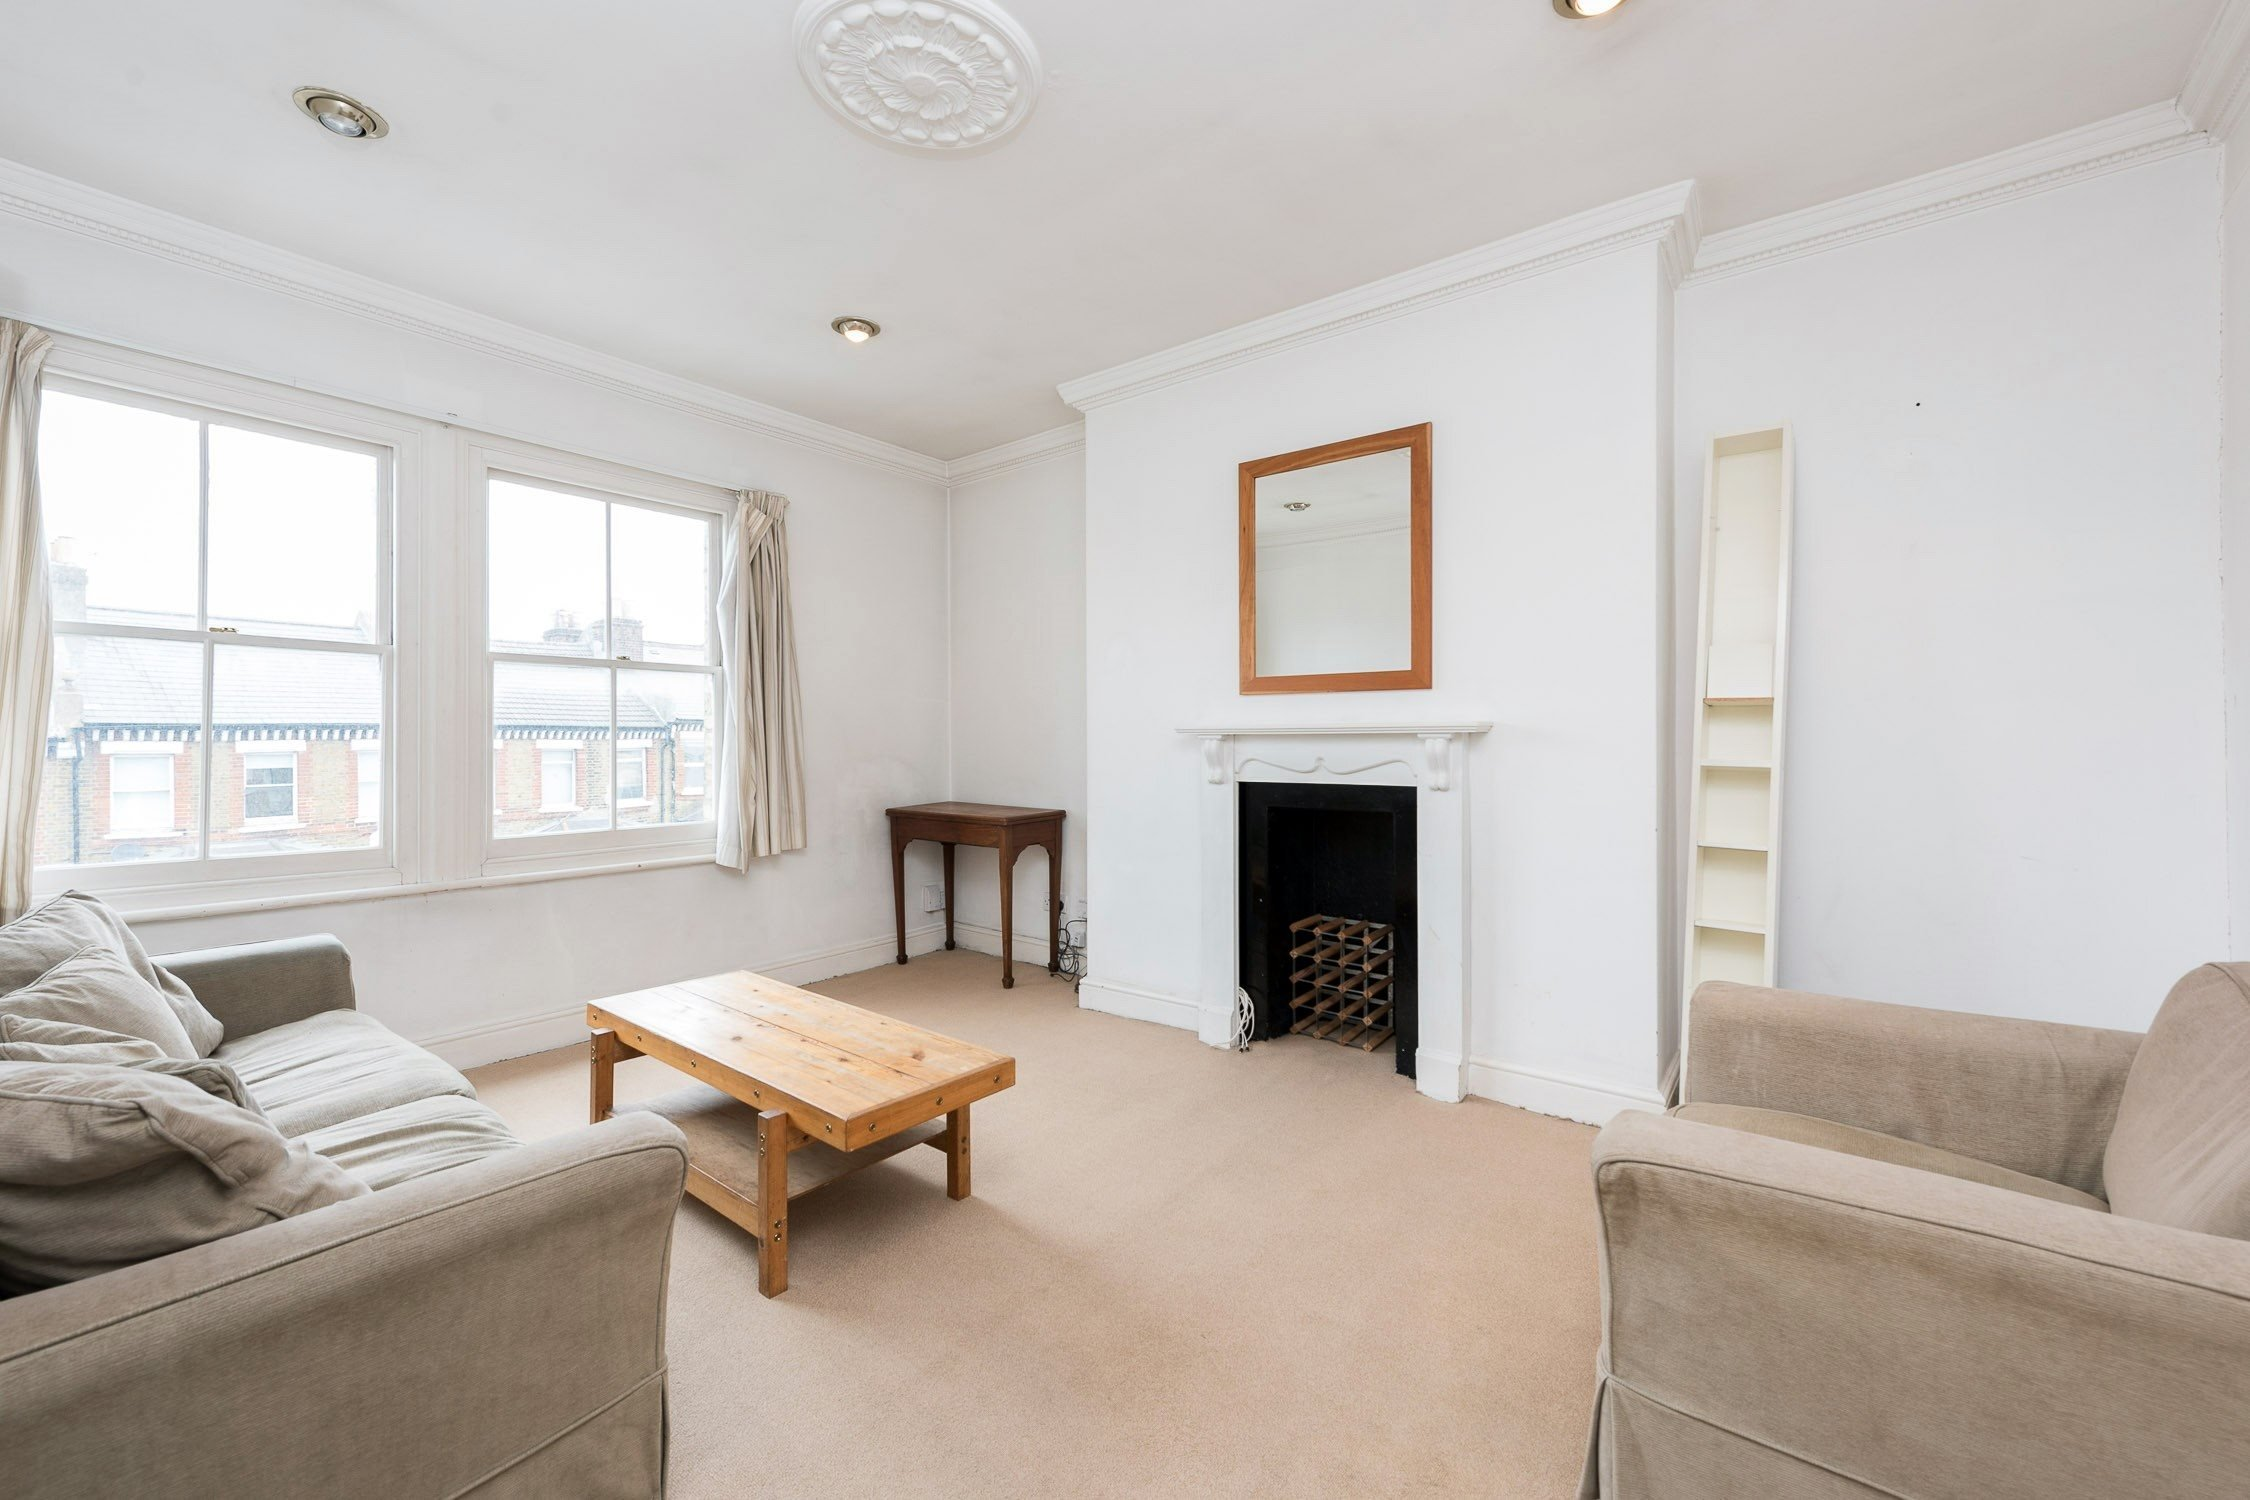 Best Portico 2 Bedroom Flat To Rent Under Offer In Battersea Battersea Rise Sw11 £395Pw With Pictures